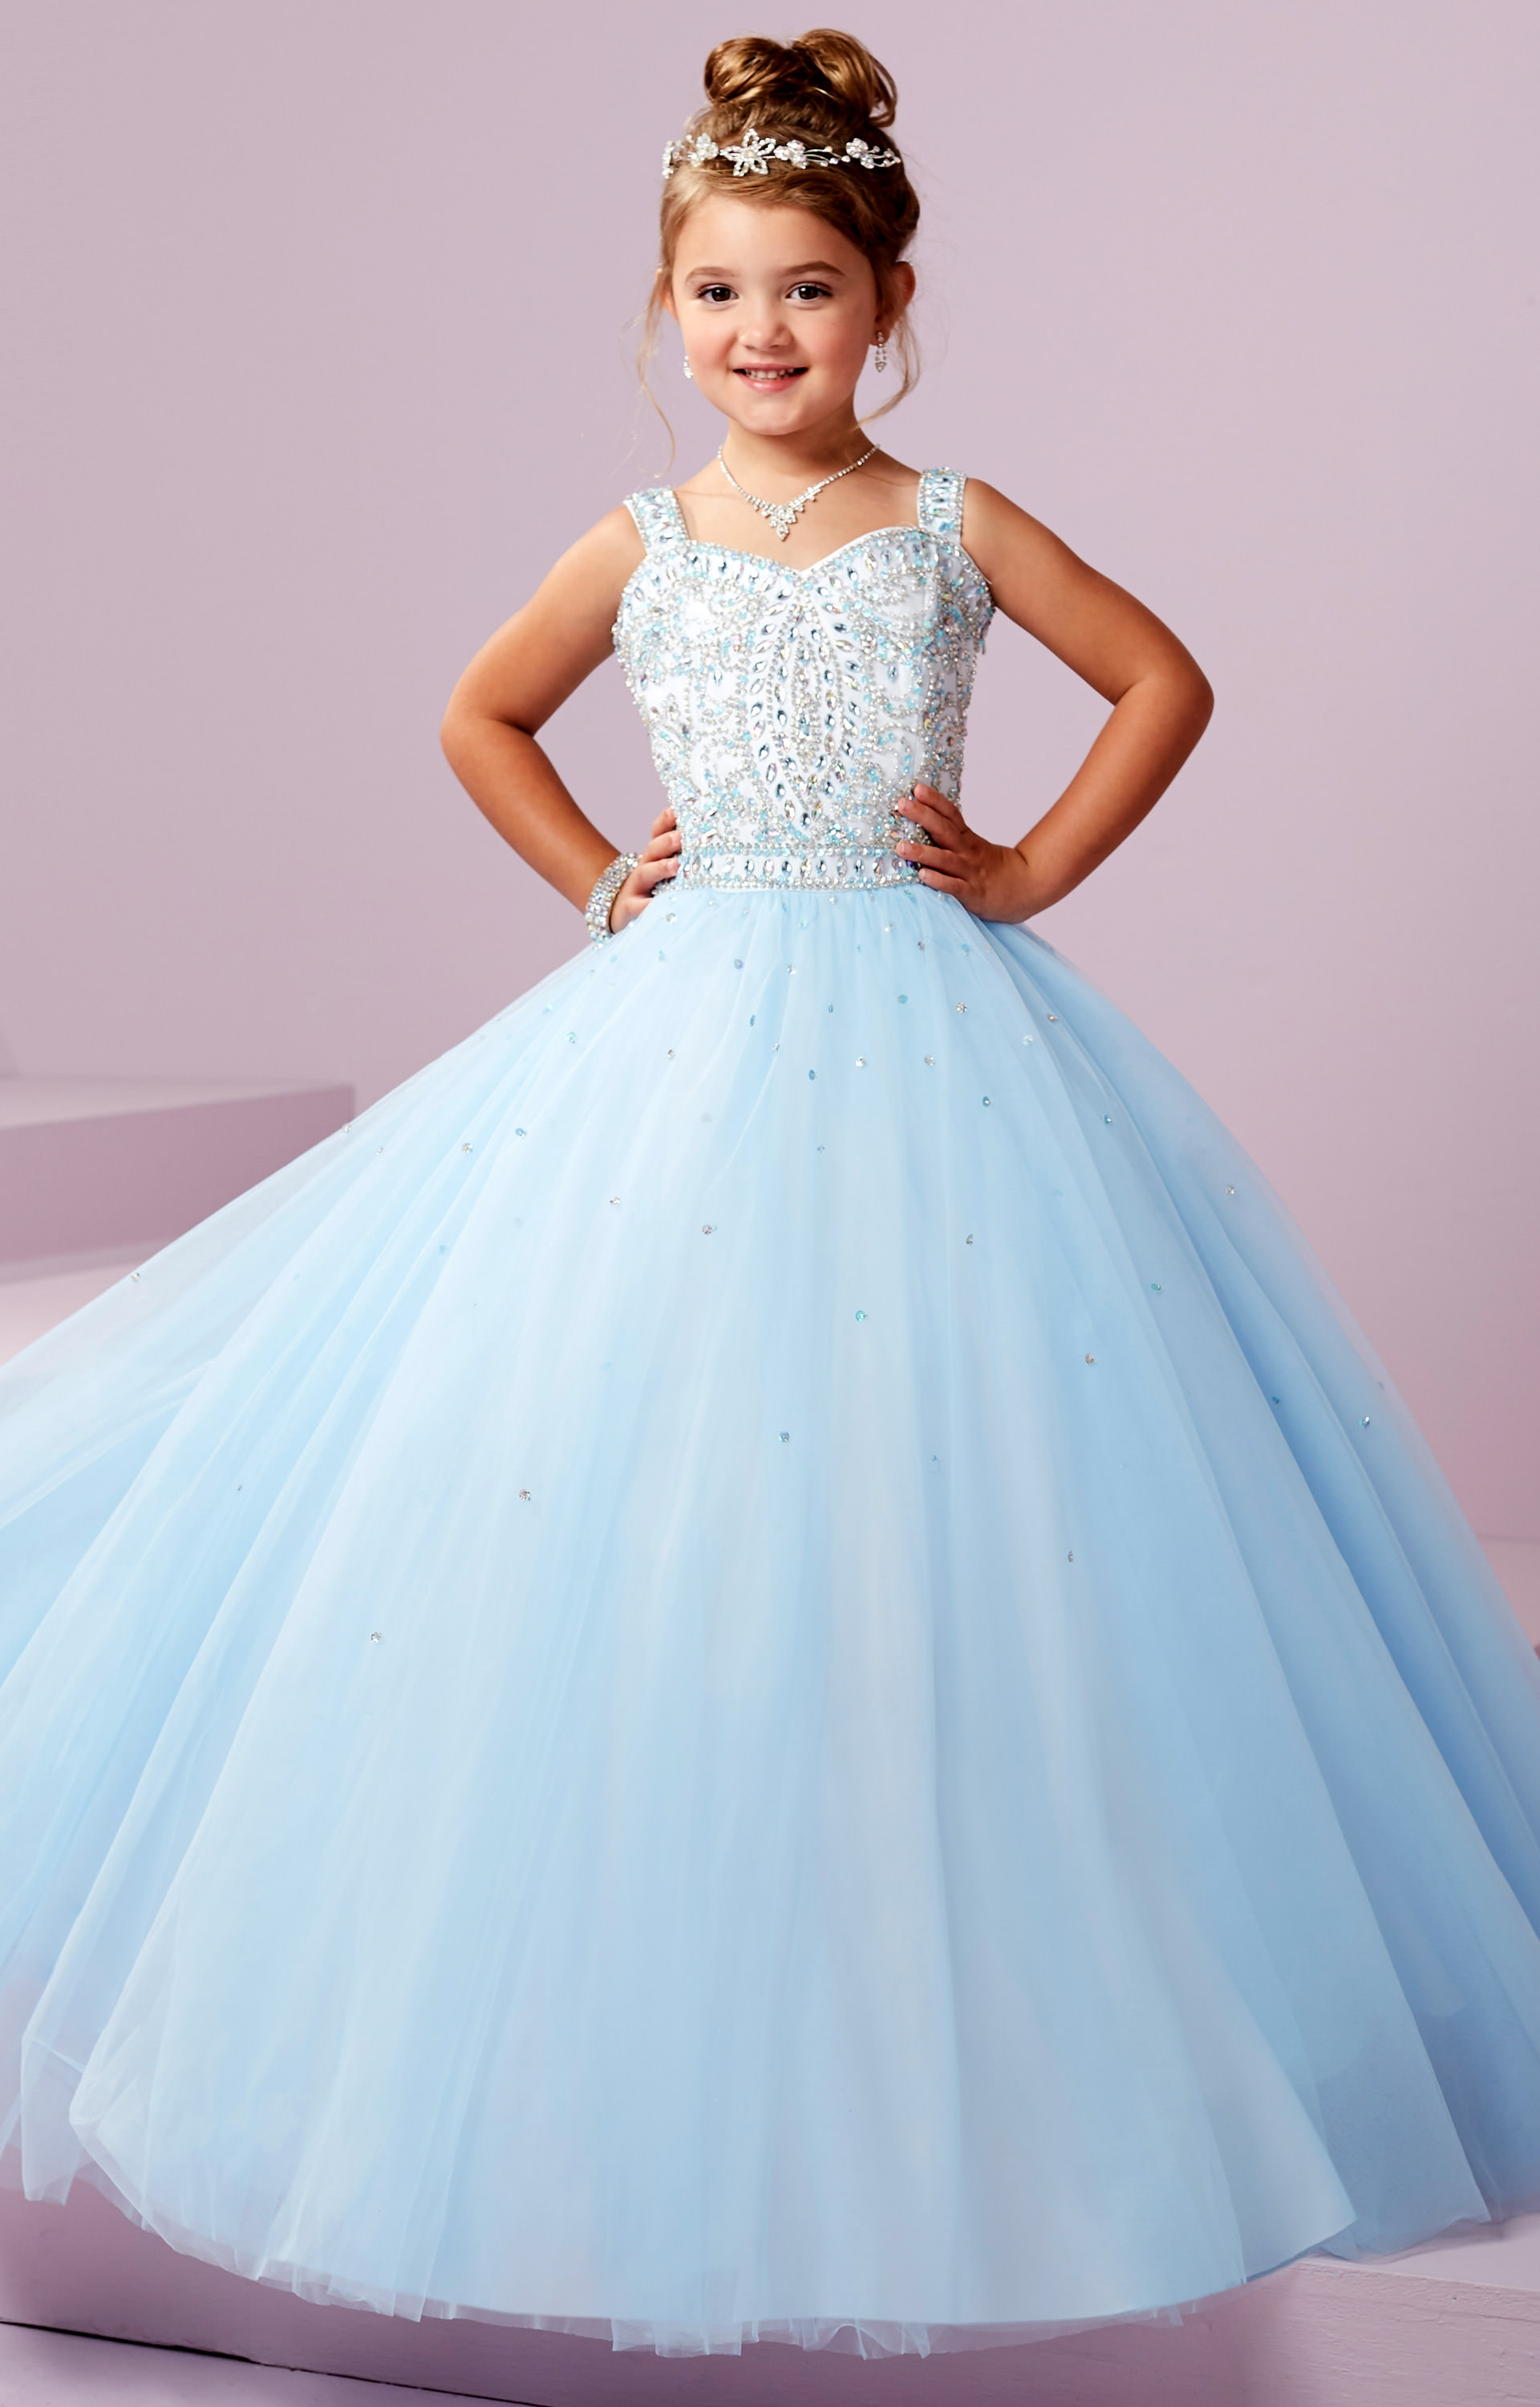 Tiffany Princess 13494 - Corset Back Sparkling Tulle Ball Gown Prom ...